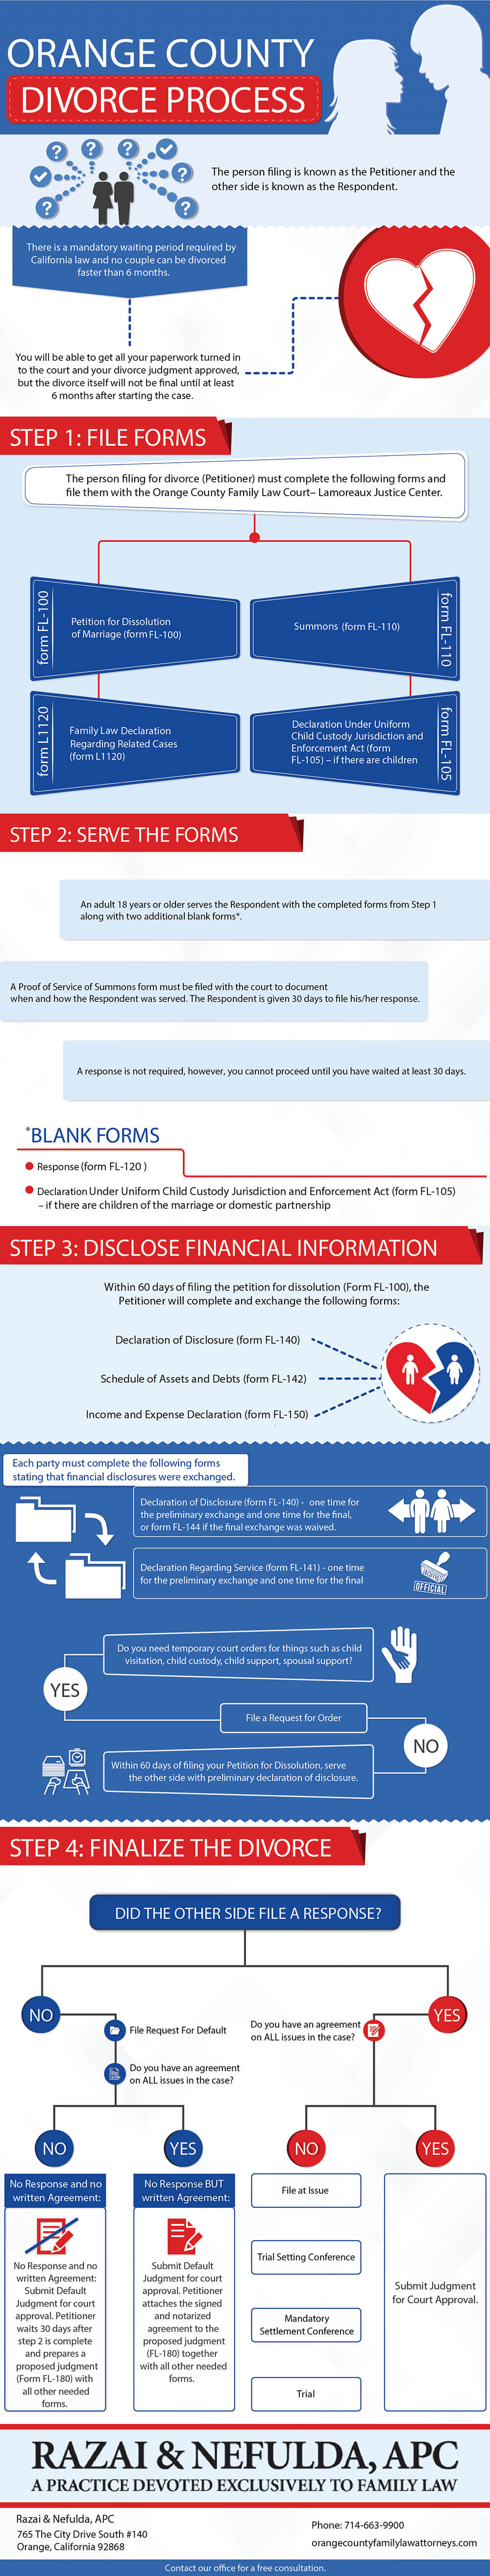 orange-county-divorce-process-infographic-plaza